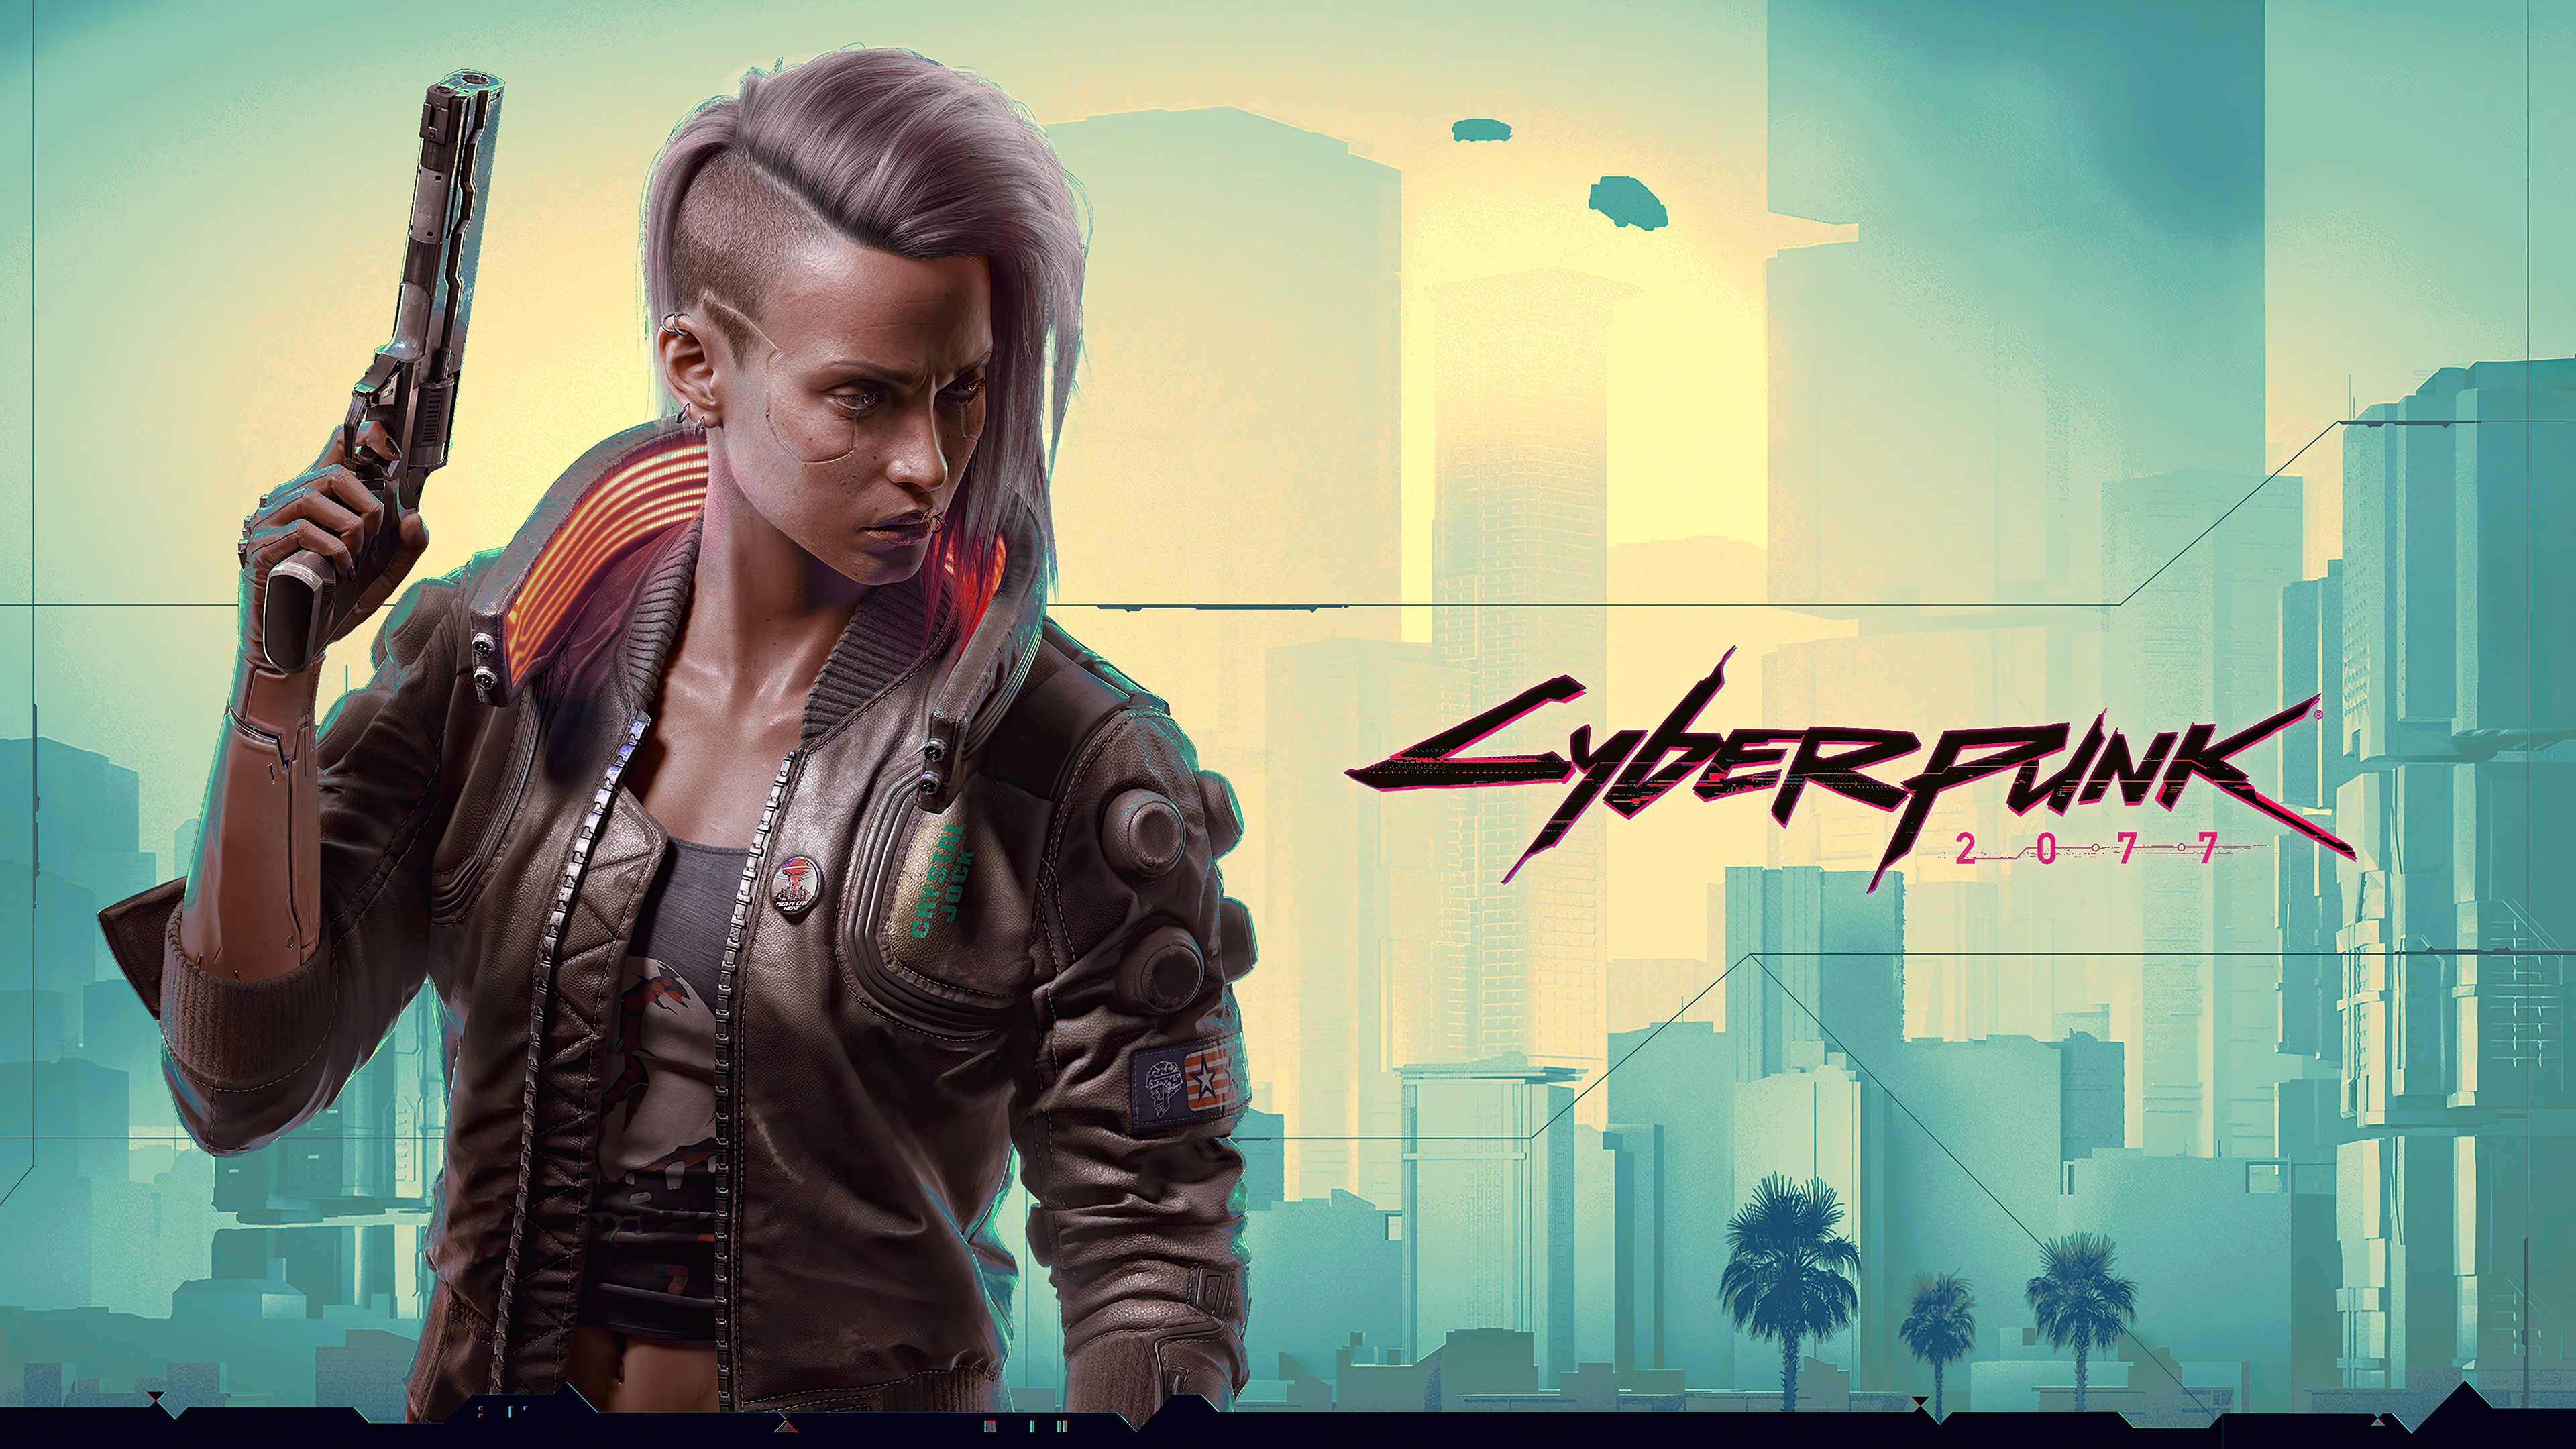 Cyberpunk 2077 Art 2020 4k Hd Games 4k Wallpapers Images Backgrounds Photos And Pictures